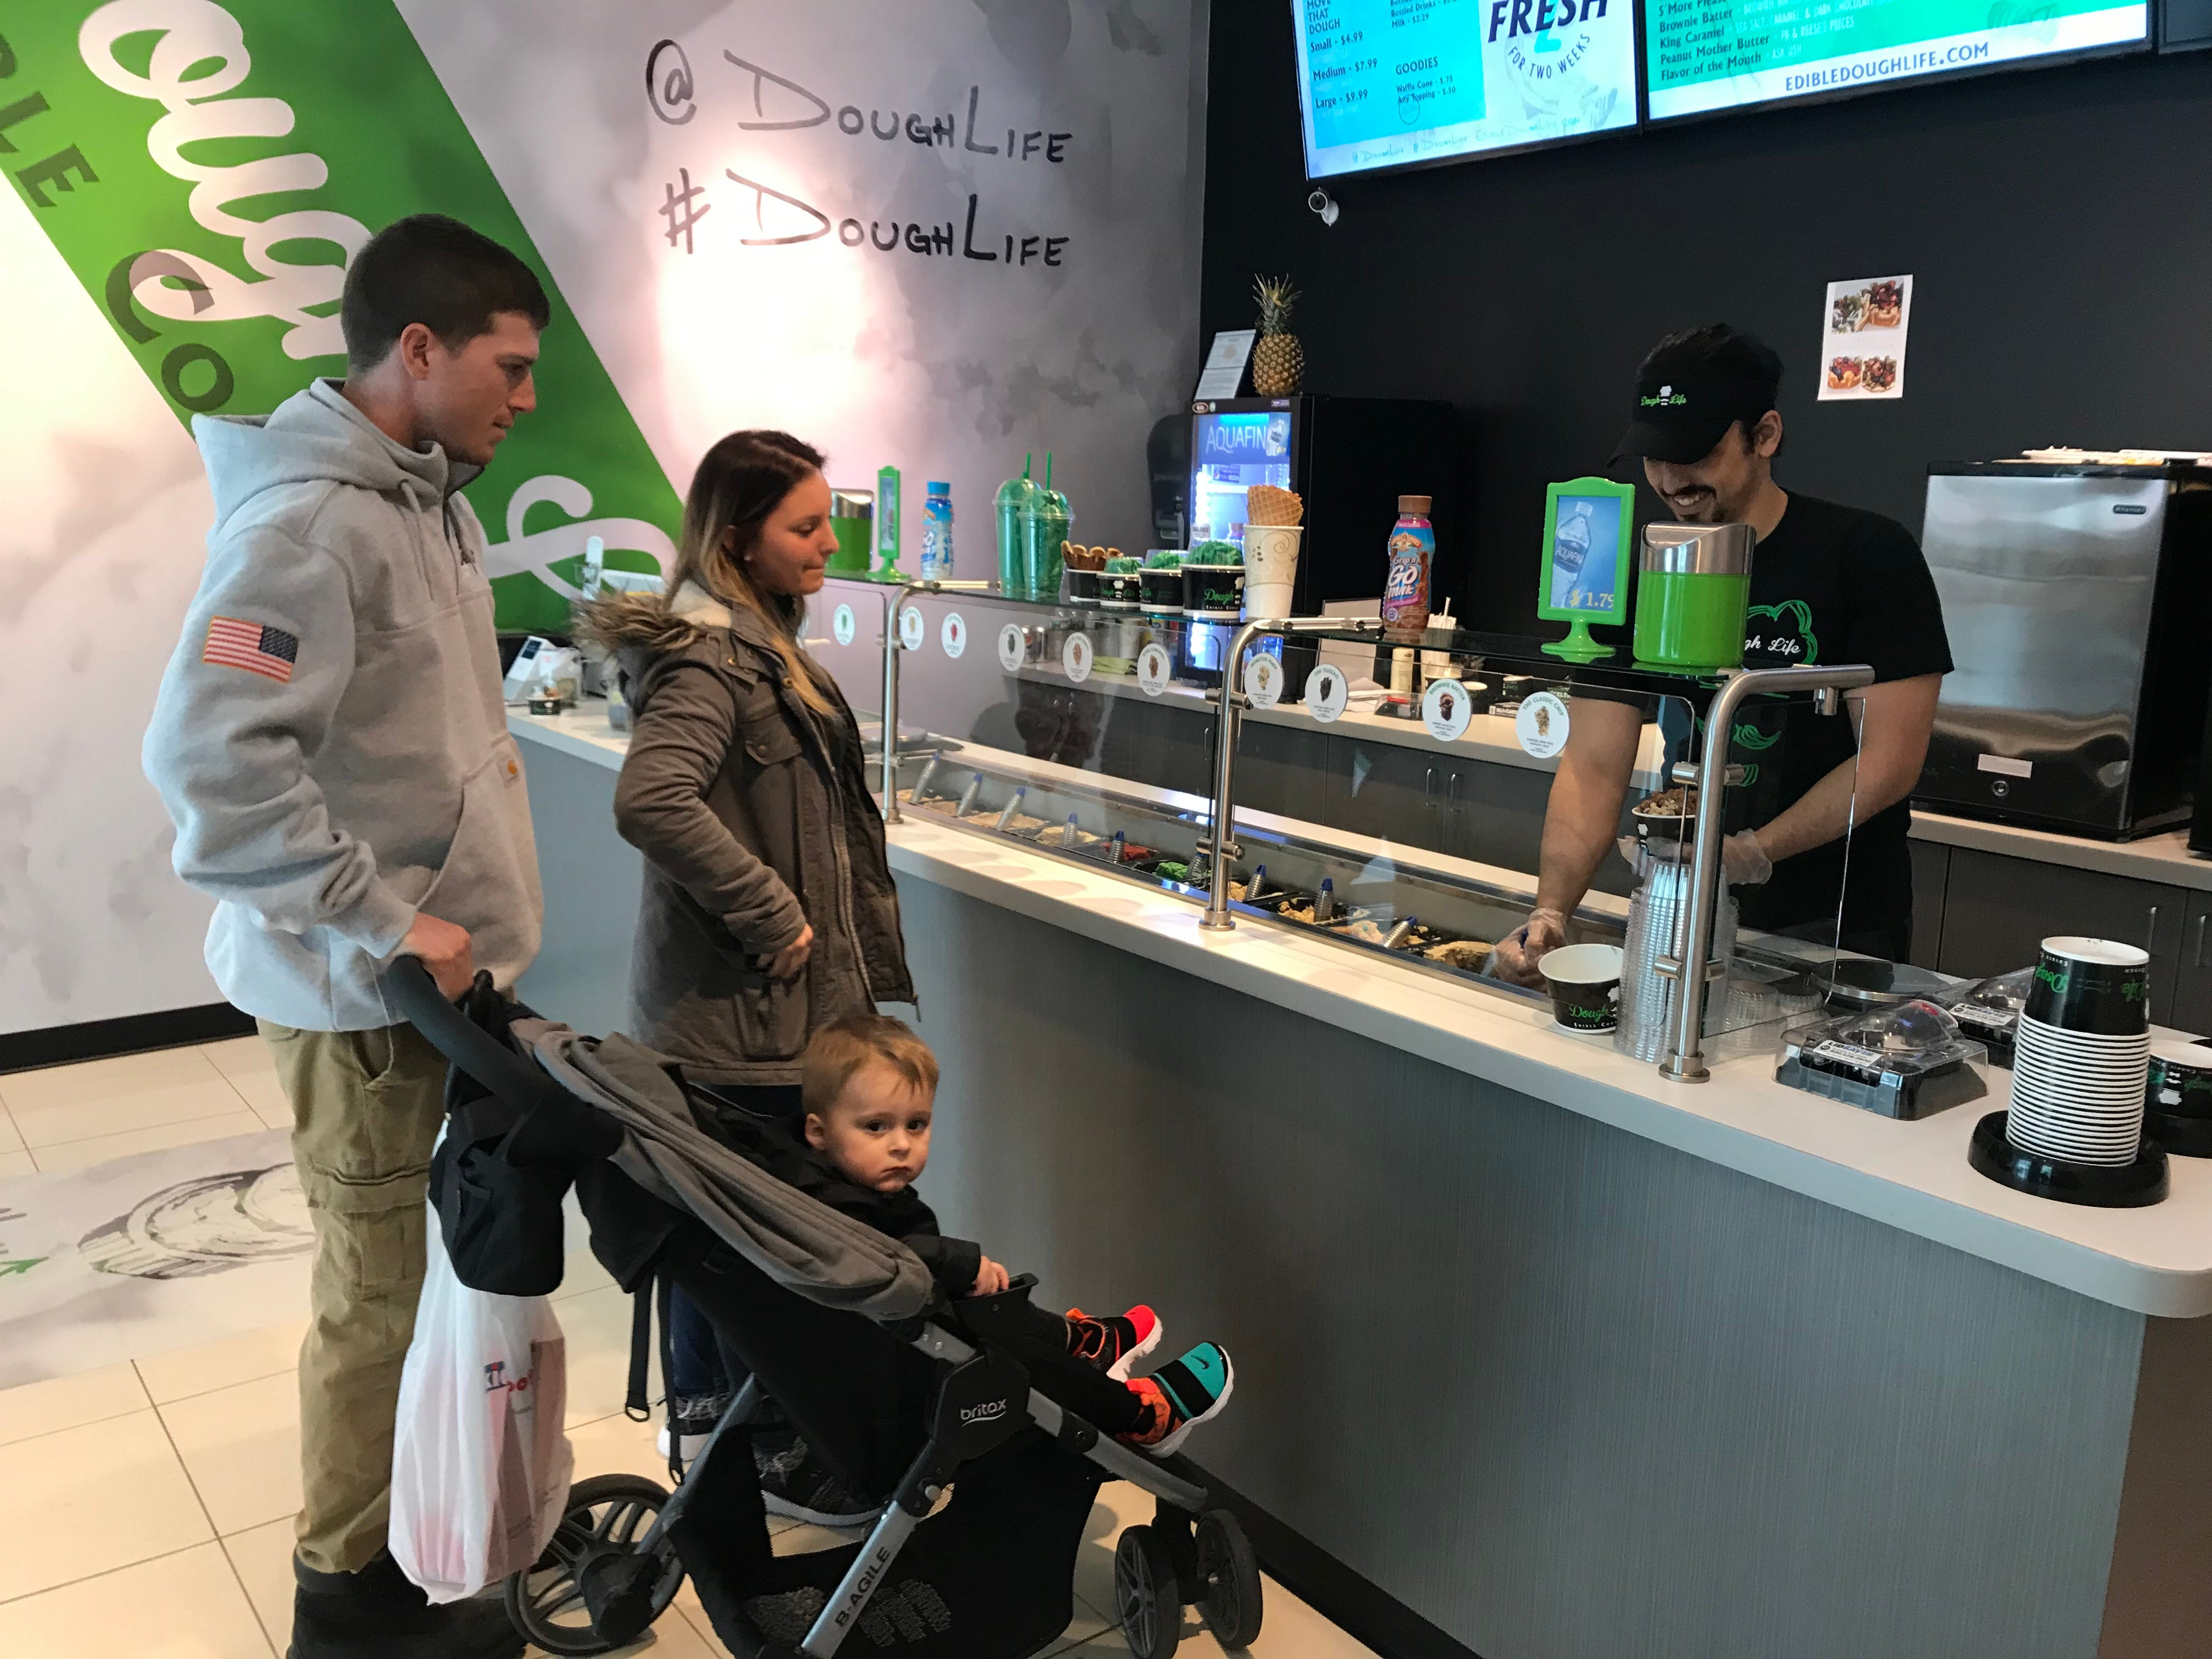 Yasin Cimen, a Dough Life employee, serves Kolin and Julia Sawdey of Hilton, who planned to share their dough with their 2-year-old son, Klayton.